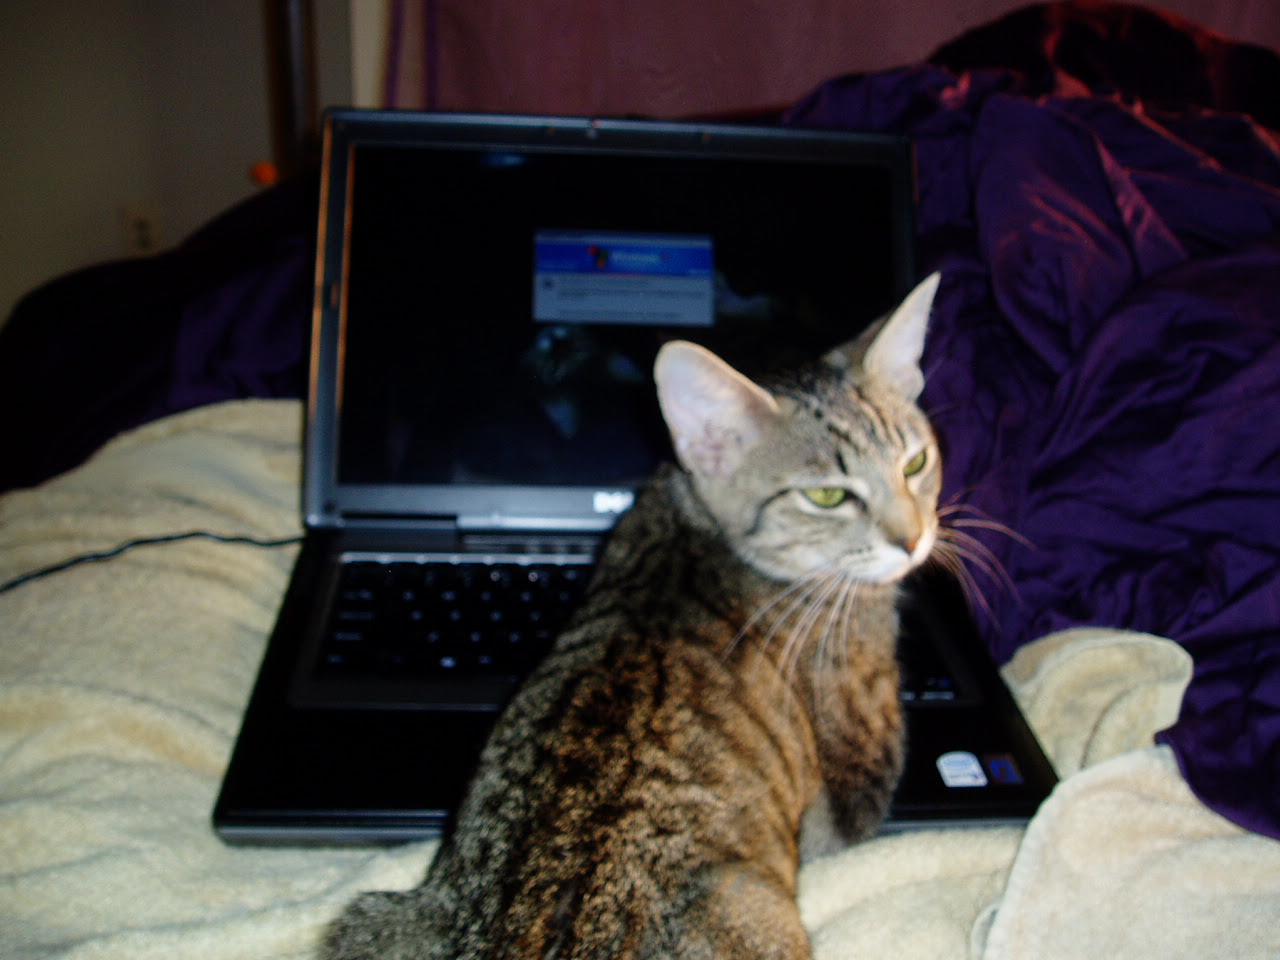 Little Ashley at the computer